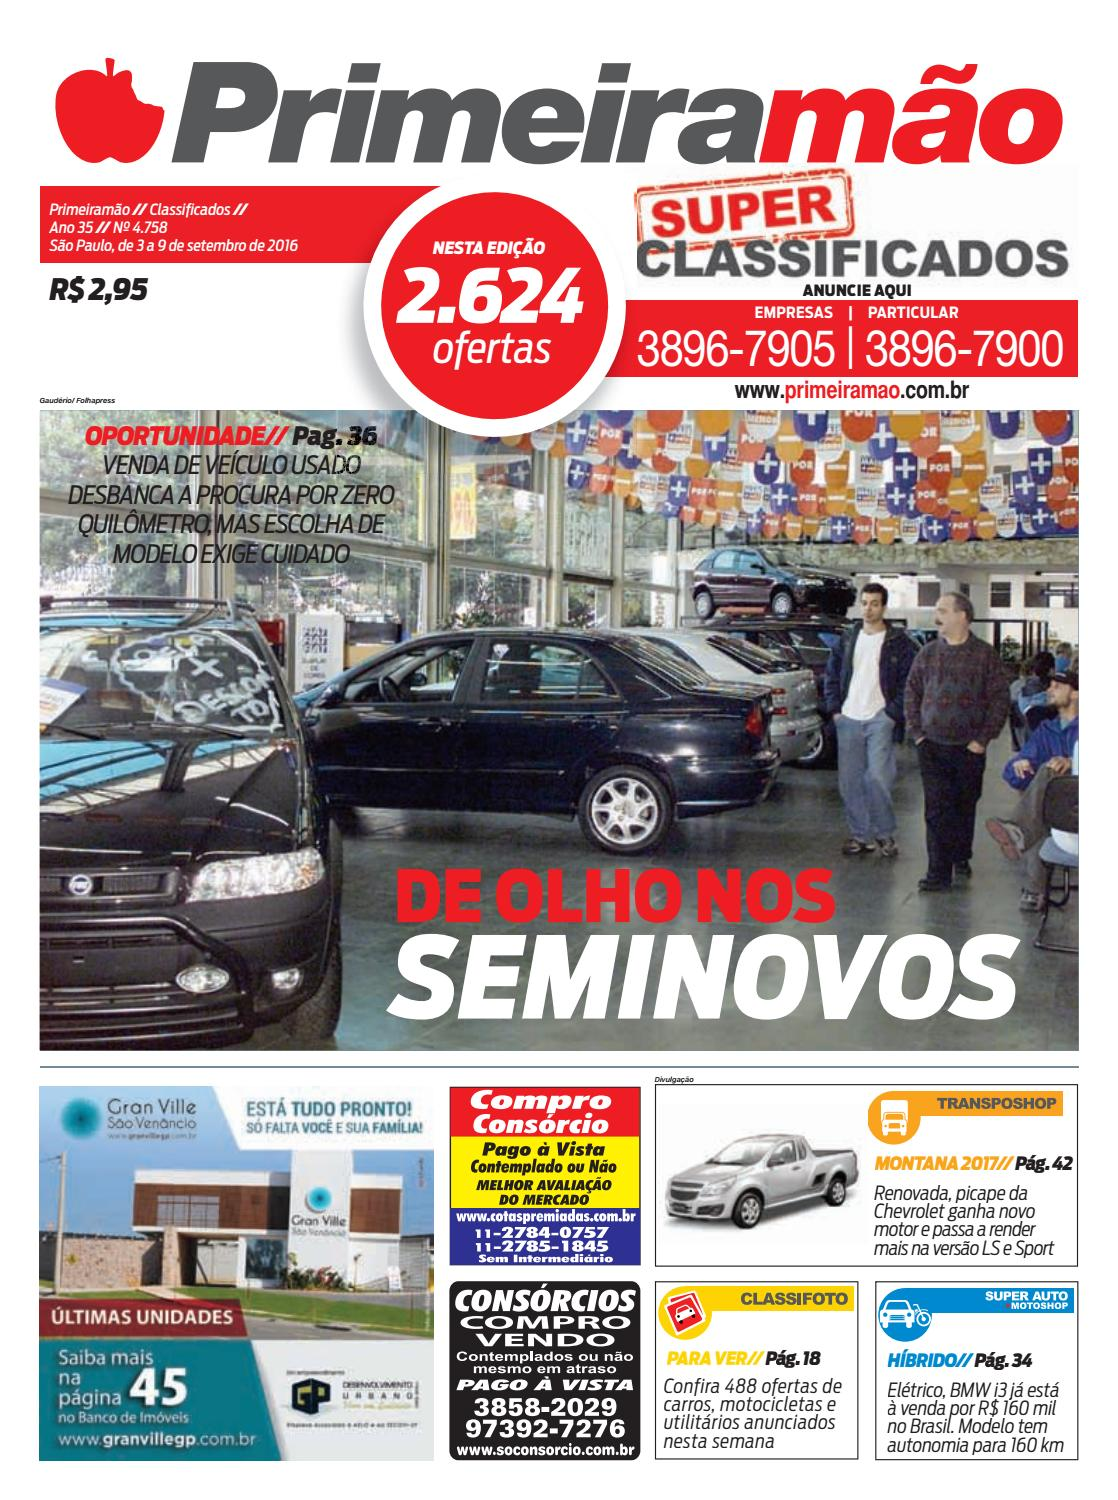 4a90644c513 20160903 br primeiramaoclassificados by metro brazil - issuu